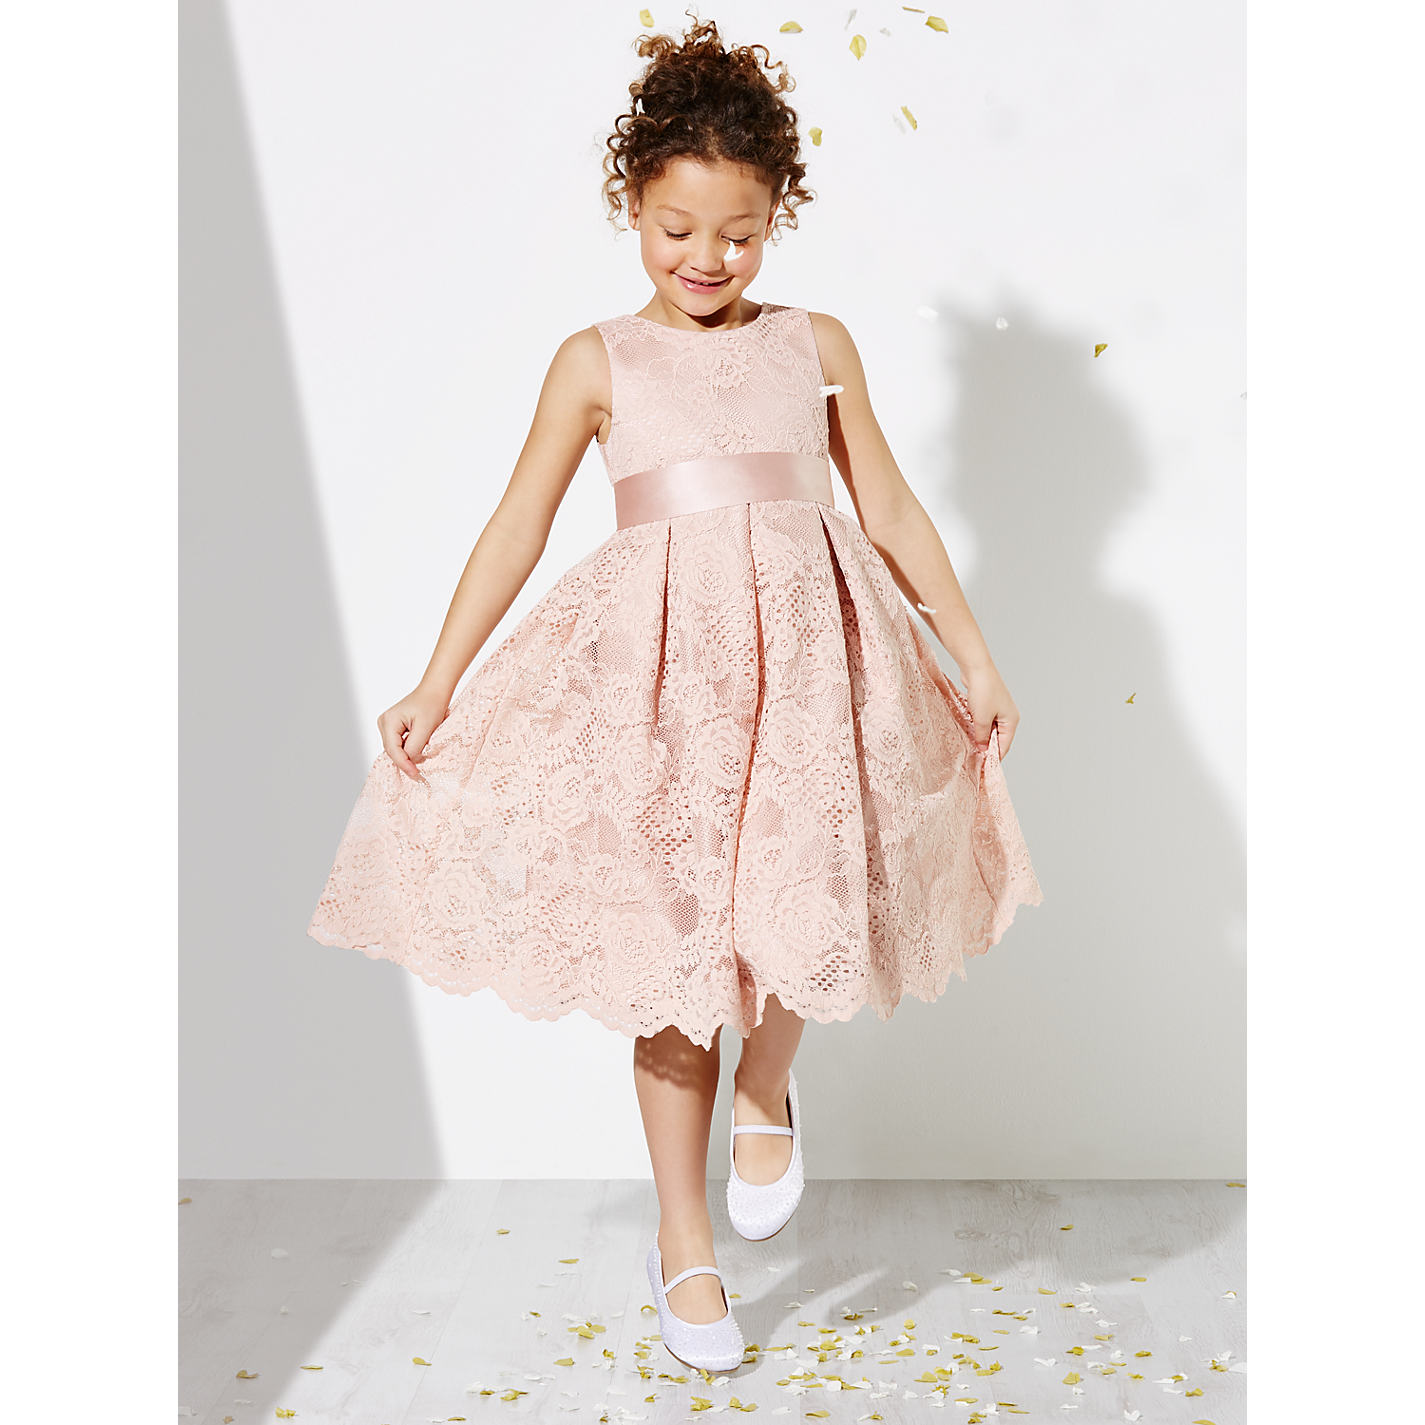 Buy john lewis girls corded lace bridesmaid dress pink john lewis buy john lewis girls corded lace bridesmaid dress pink online at johnlewis ombrellifo Gallery